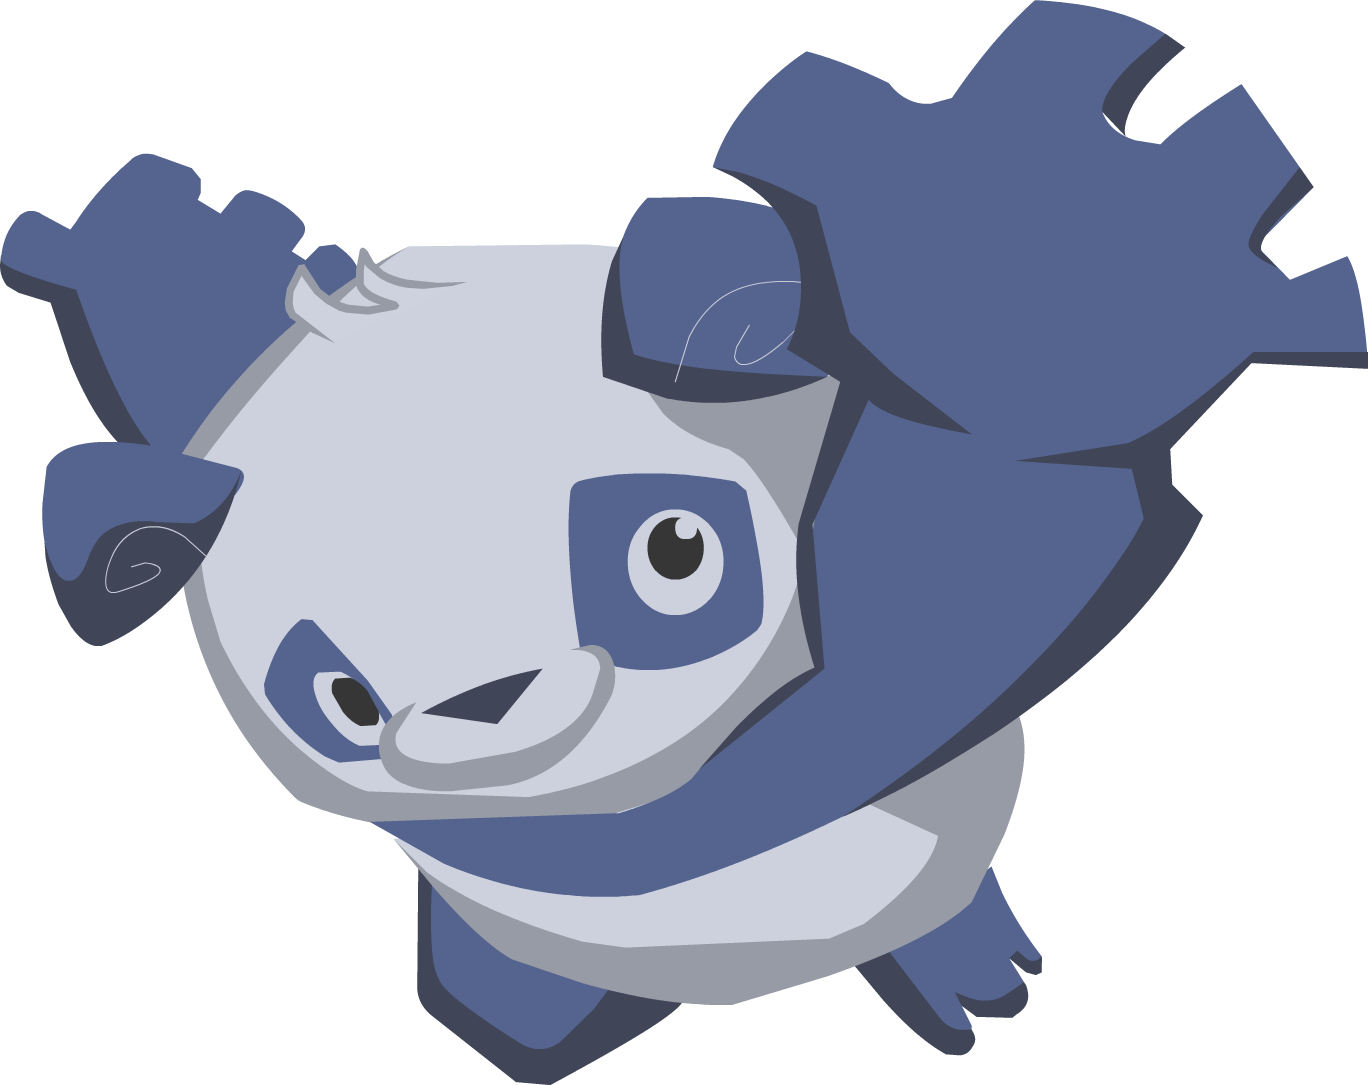 Blue panda png. Image from sky high